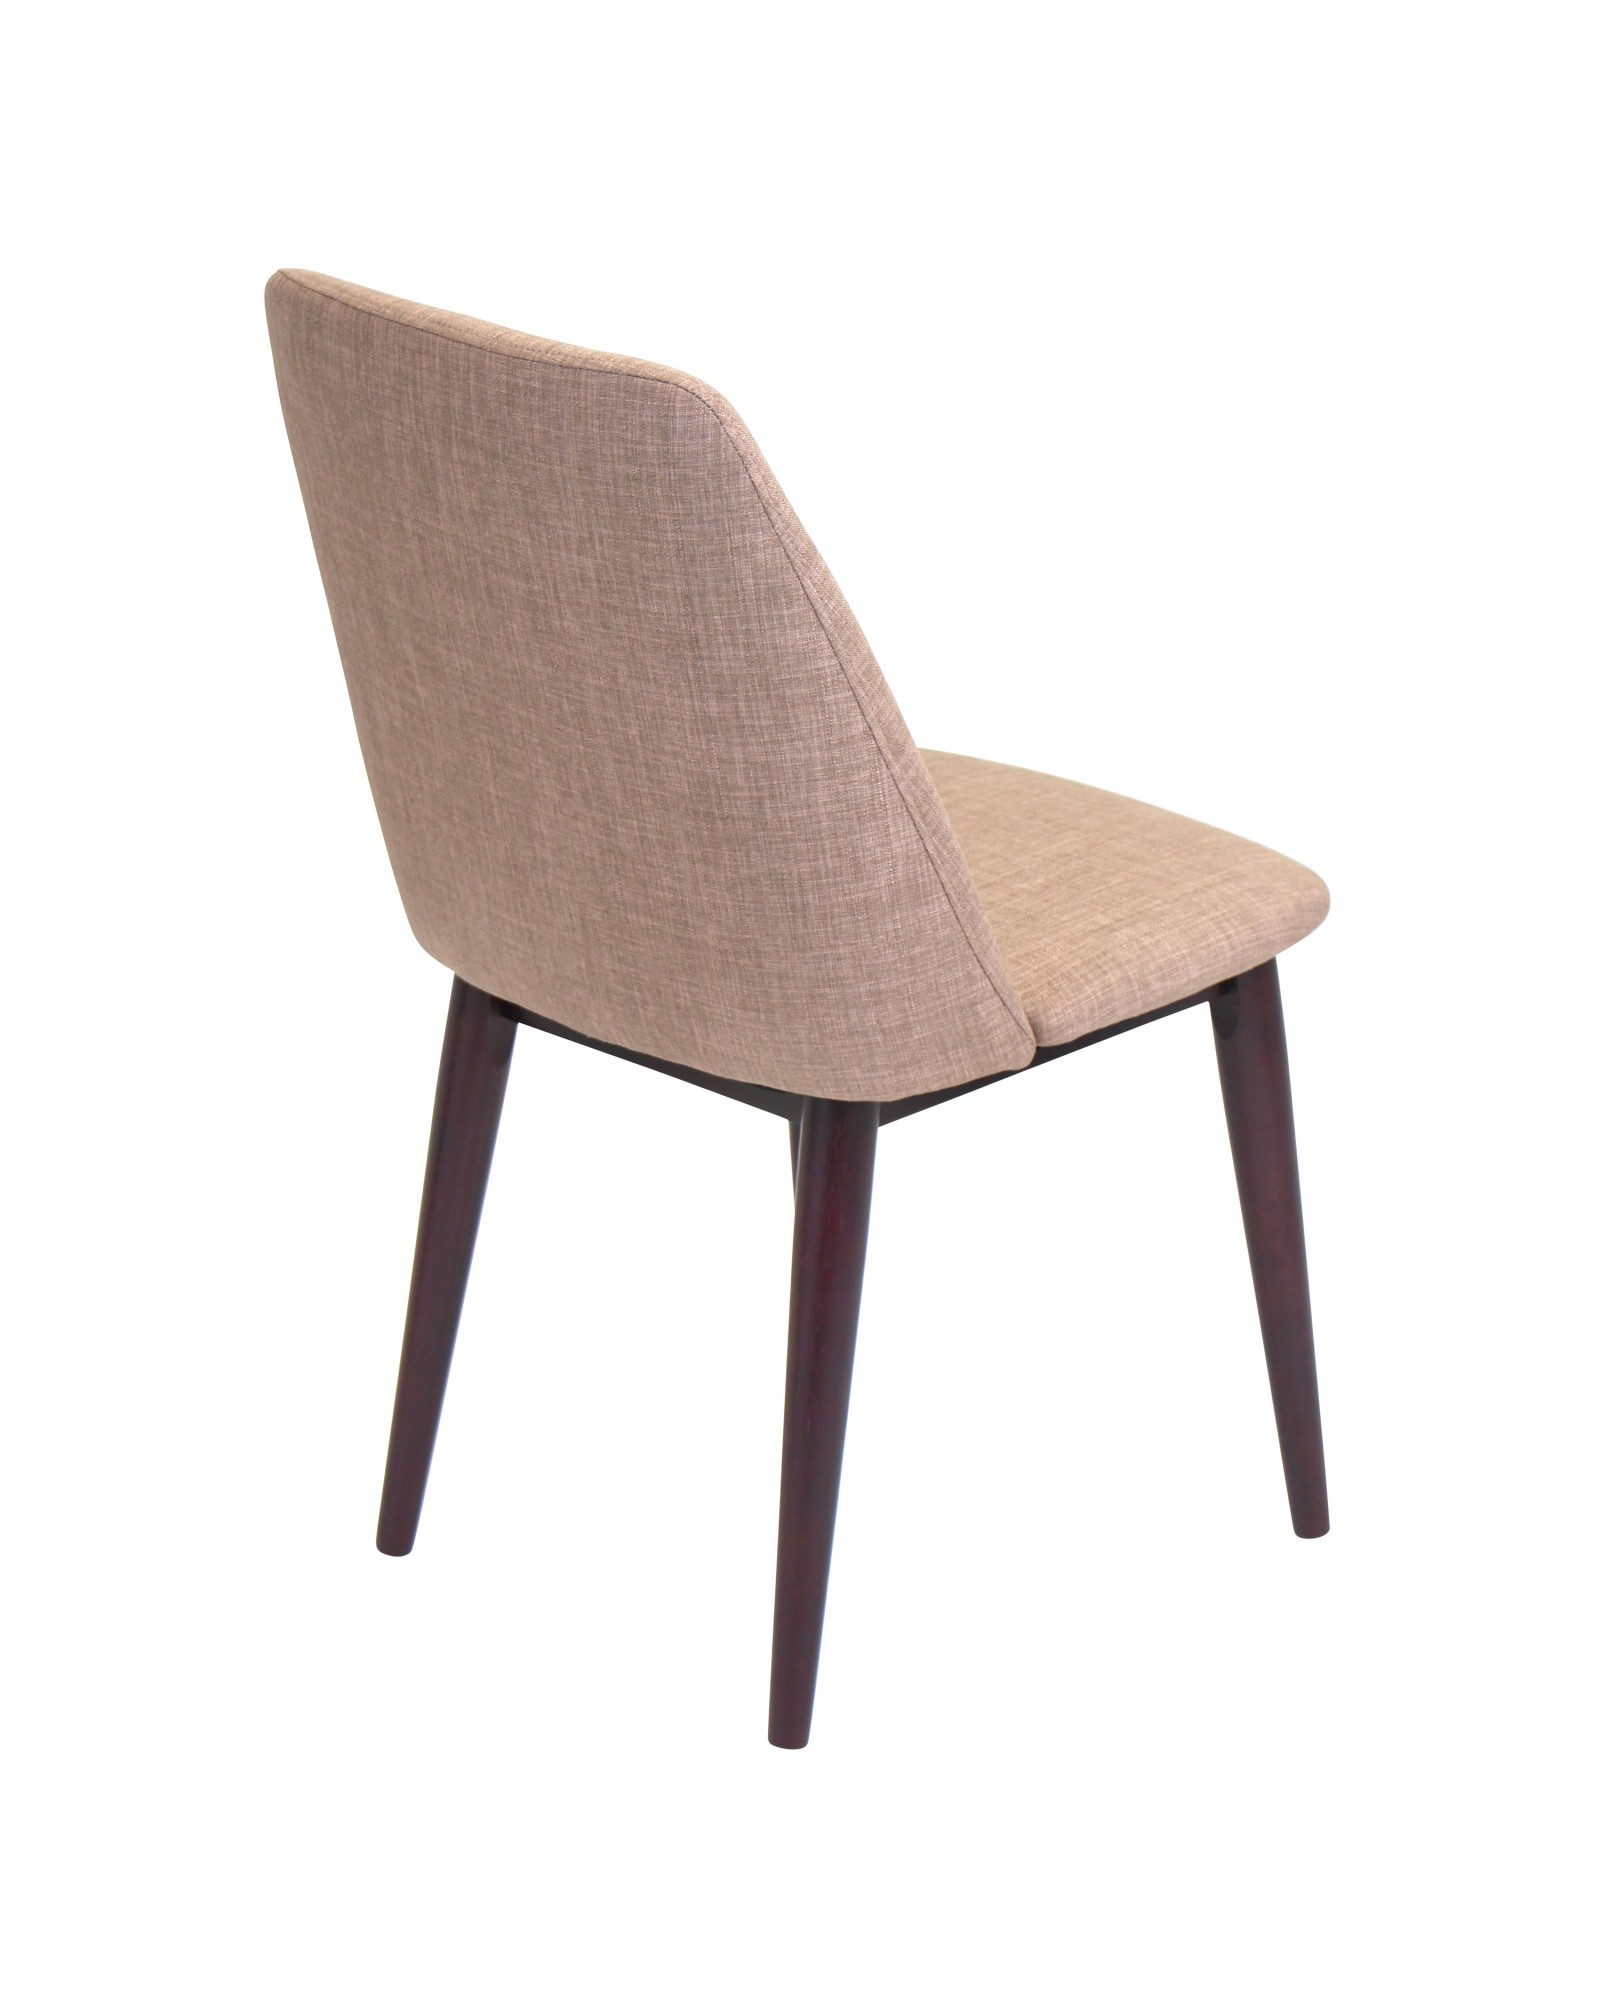 Tintori Contemporary Dining Chair in Brown Fabric - Set of 2